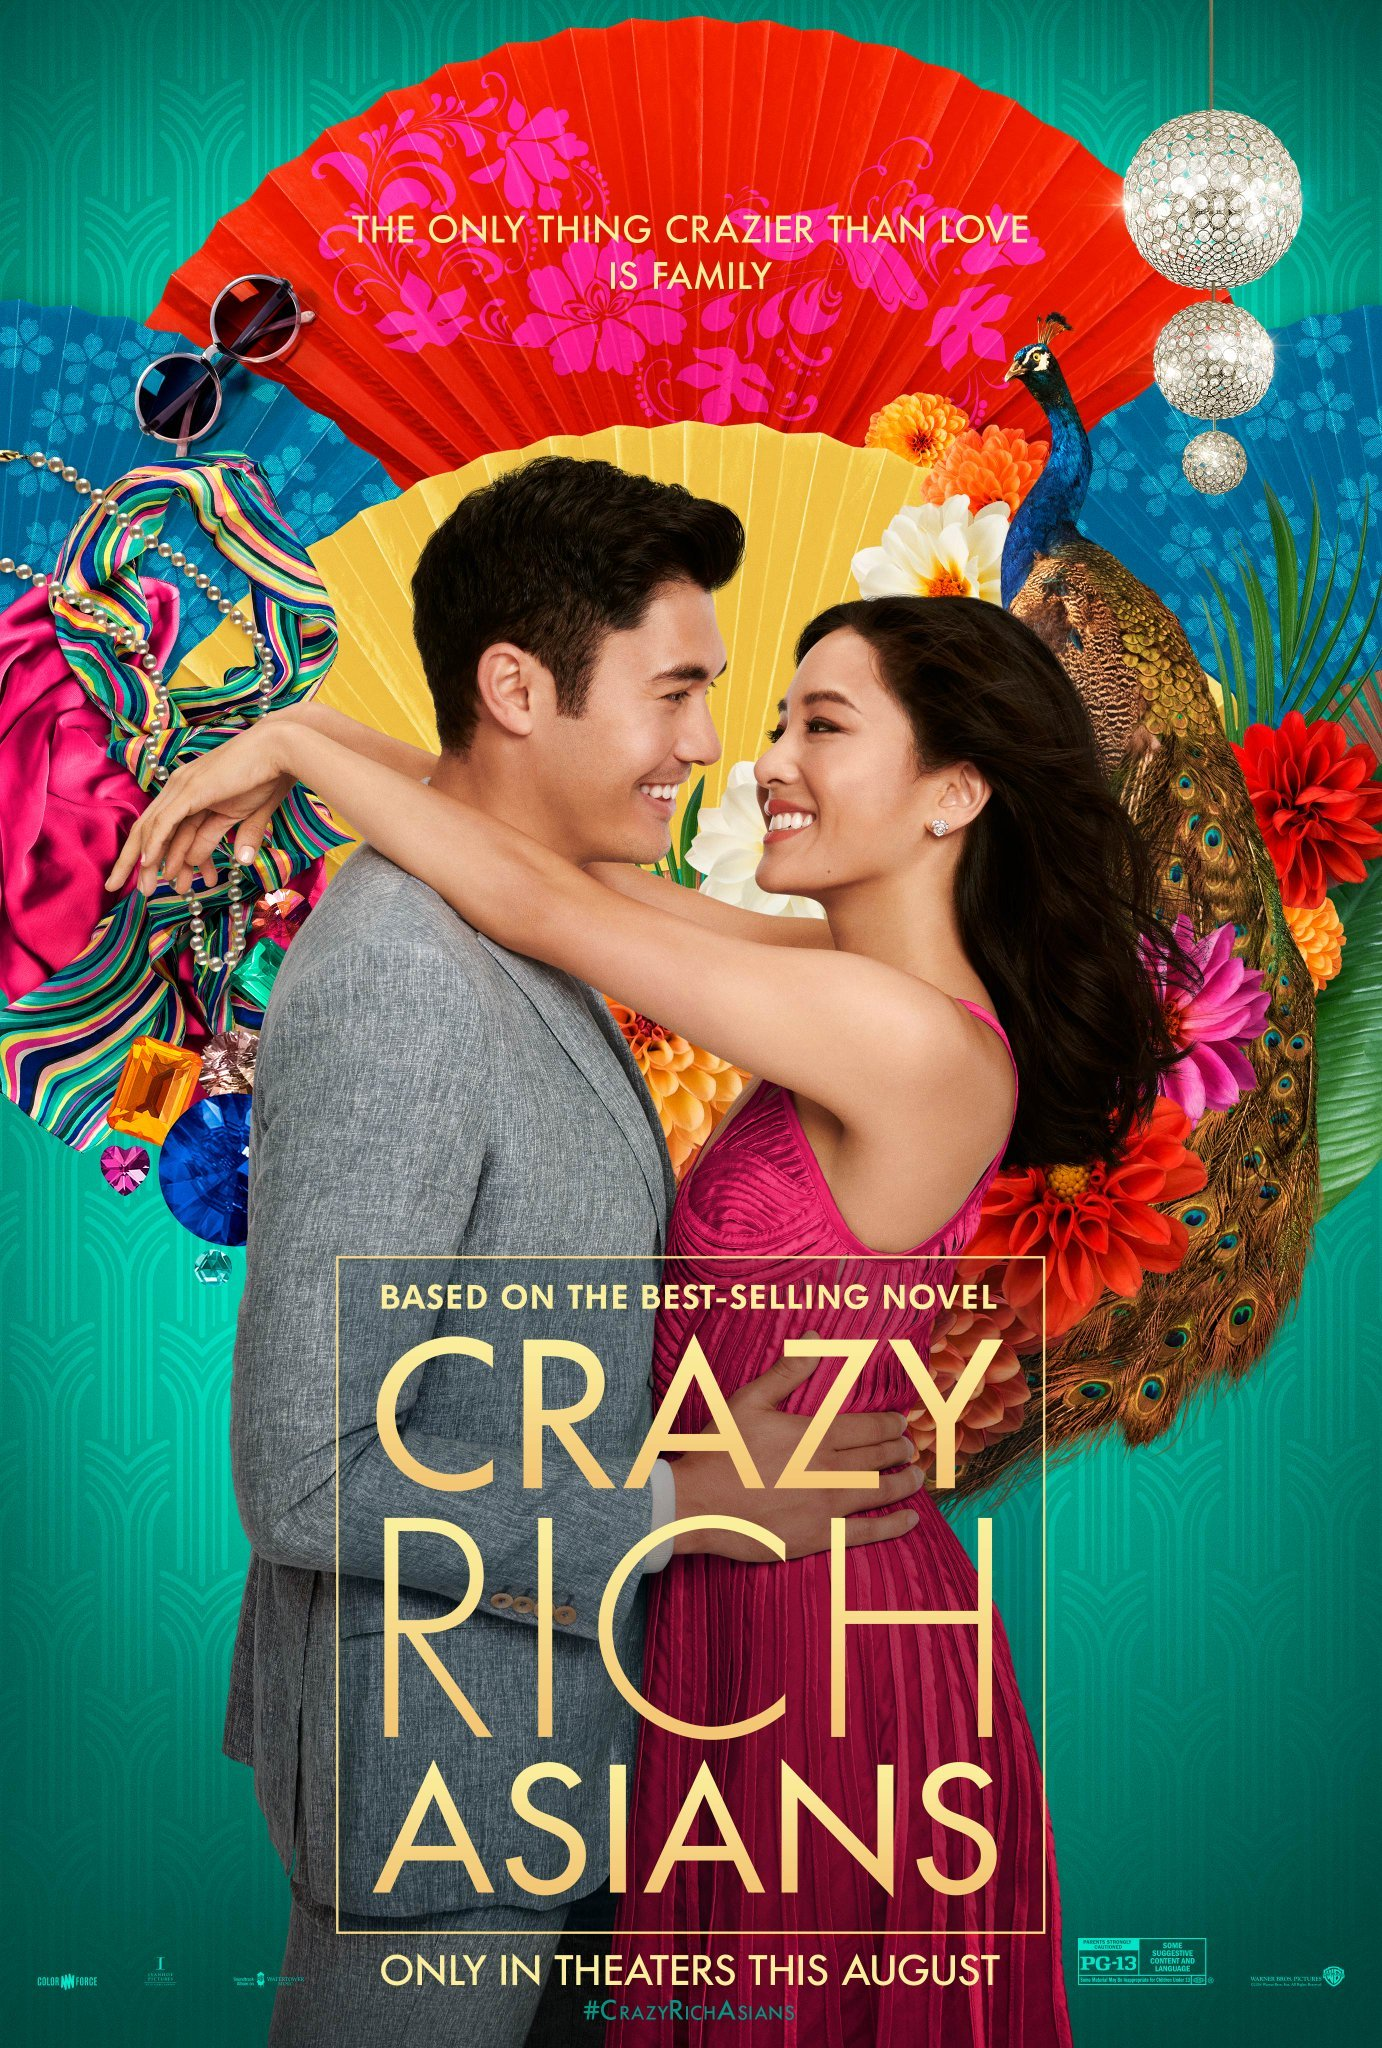 Poster art for movie Crazy Rich Asians